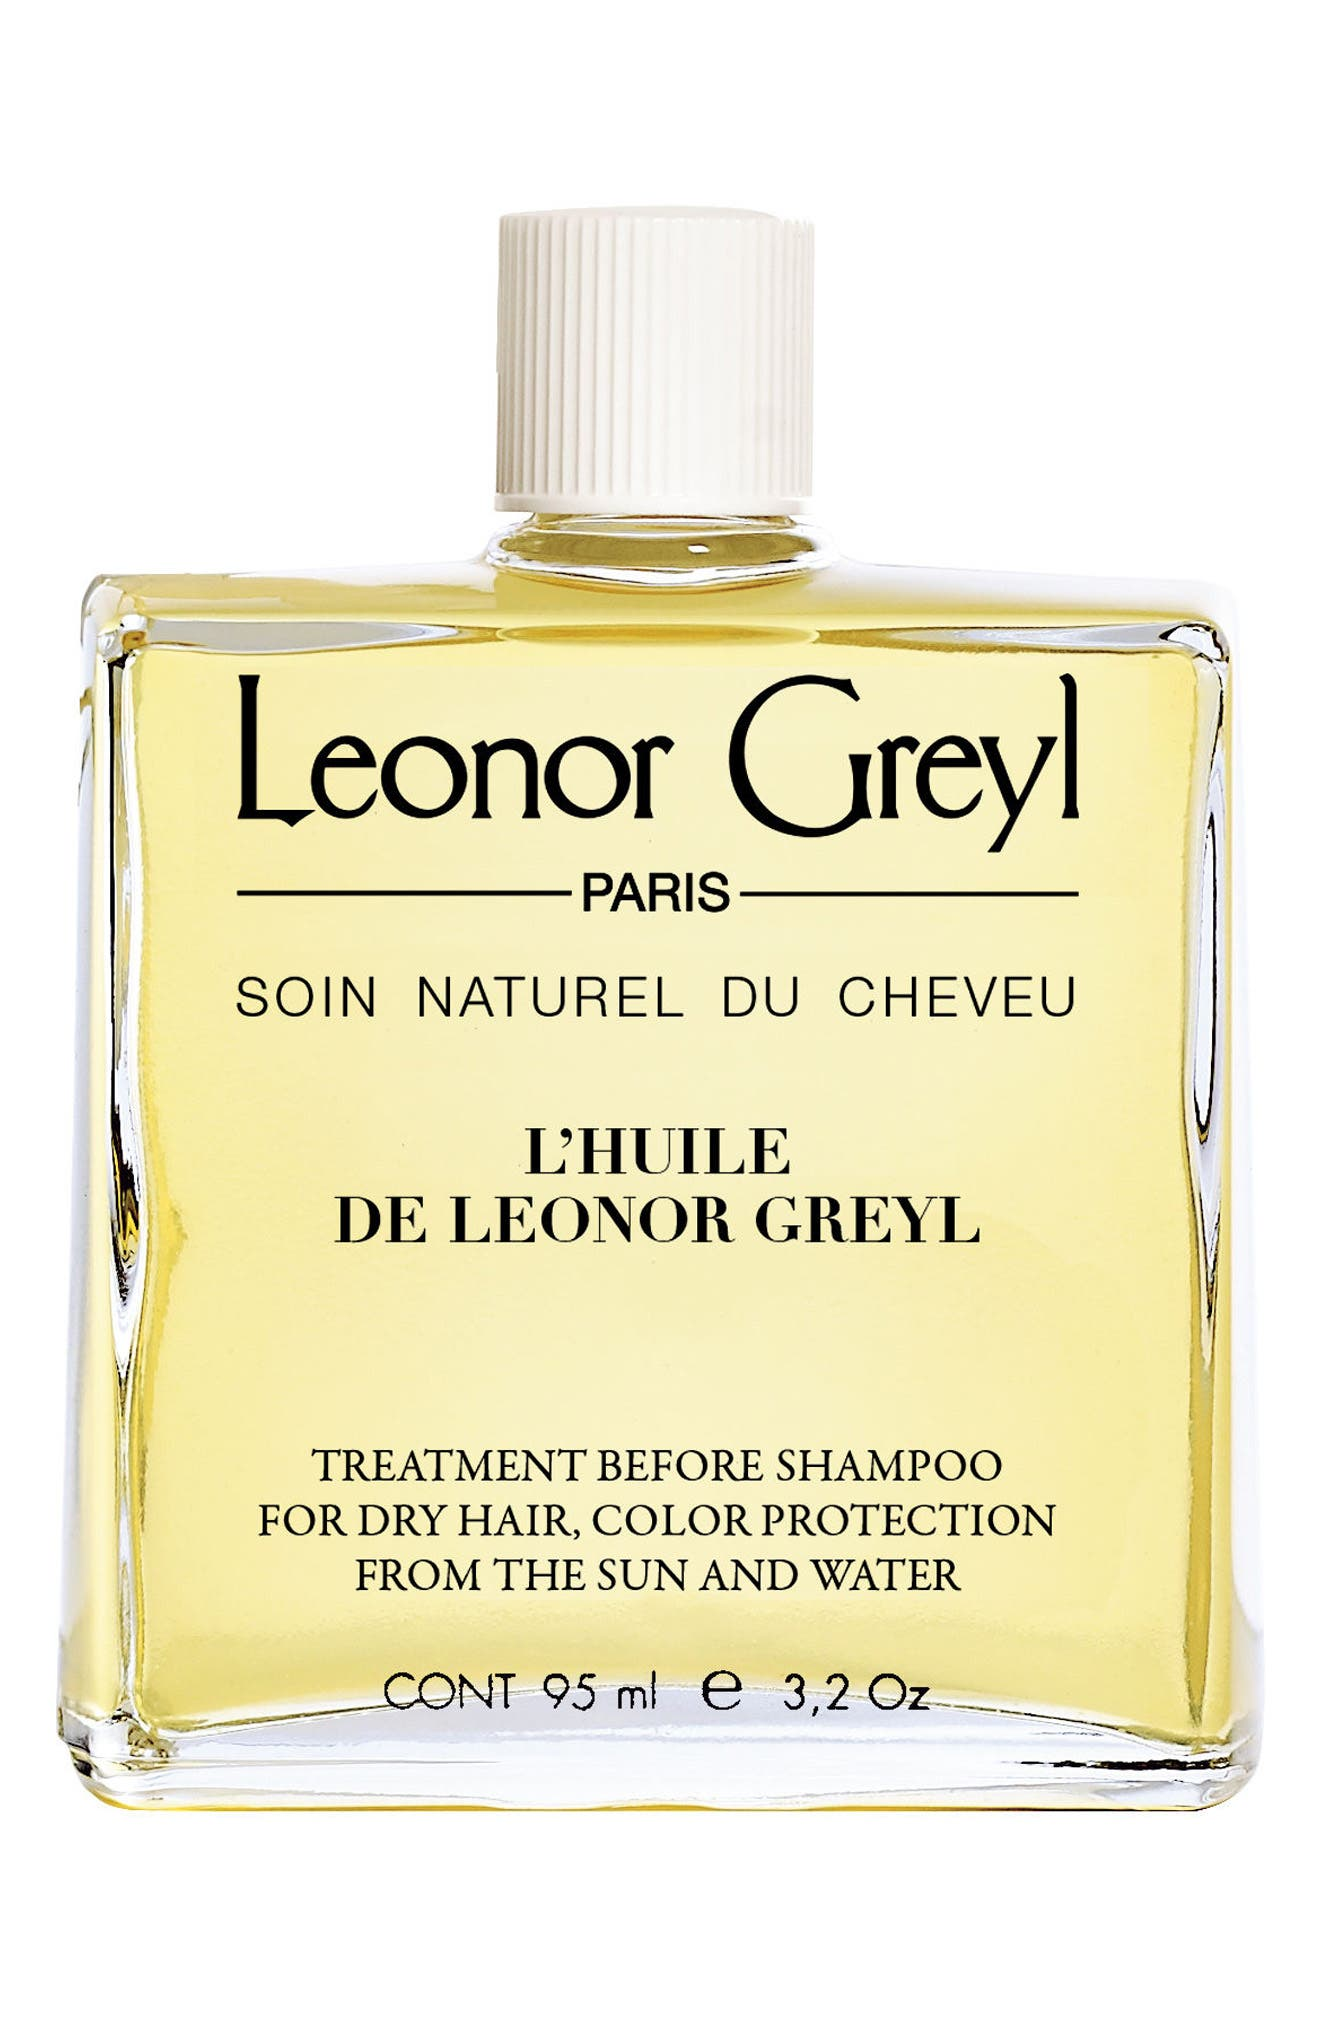 Alternate Image 1 Selected - Leonor Greyl PARIS Treatment Before Shampoo for Dry Hair, Color Protection from the Sun & Water